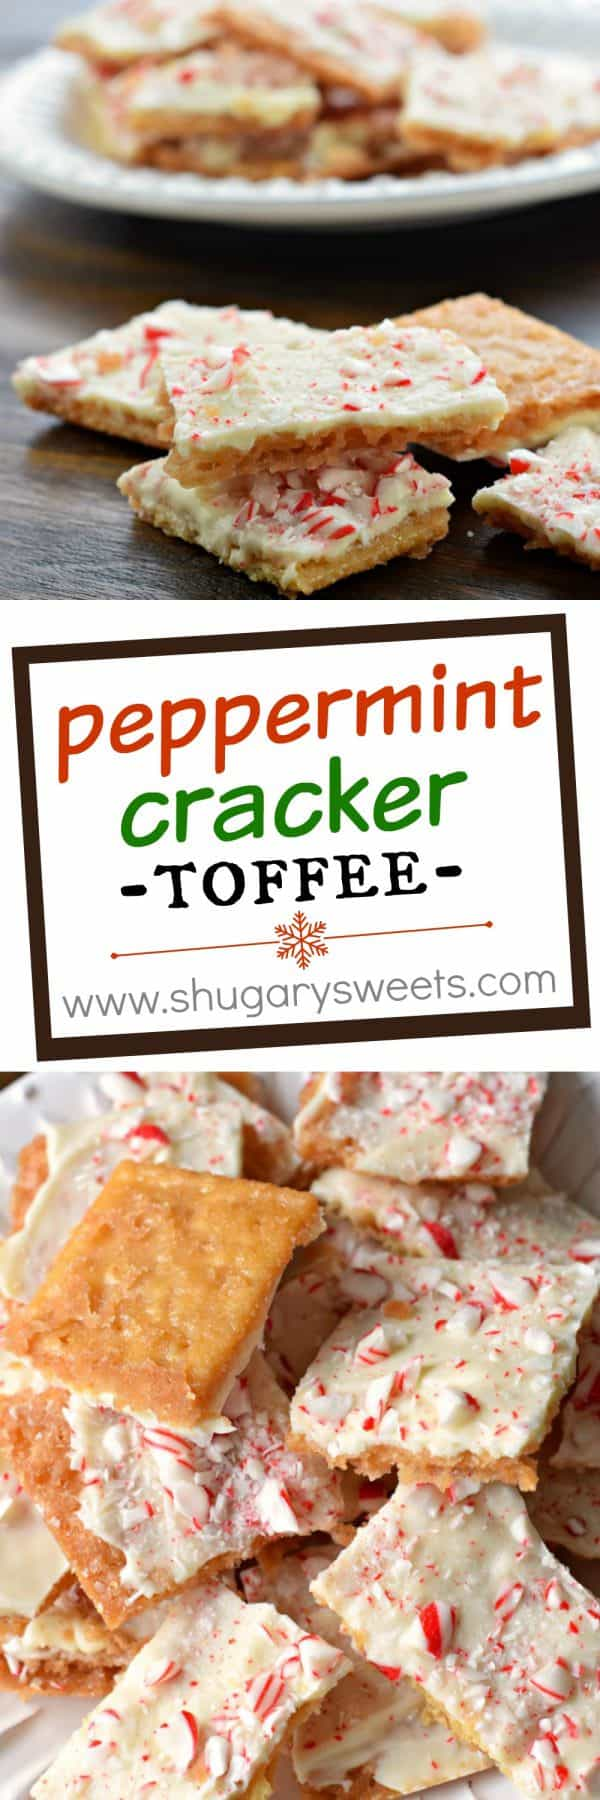 This Peppermint Cracker Toffee is ridiculously easy and delicious. Crisp, buttery toffee topped with white chocolate and peppermint candy!